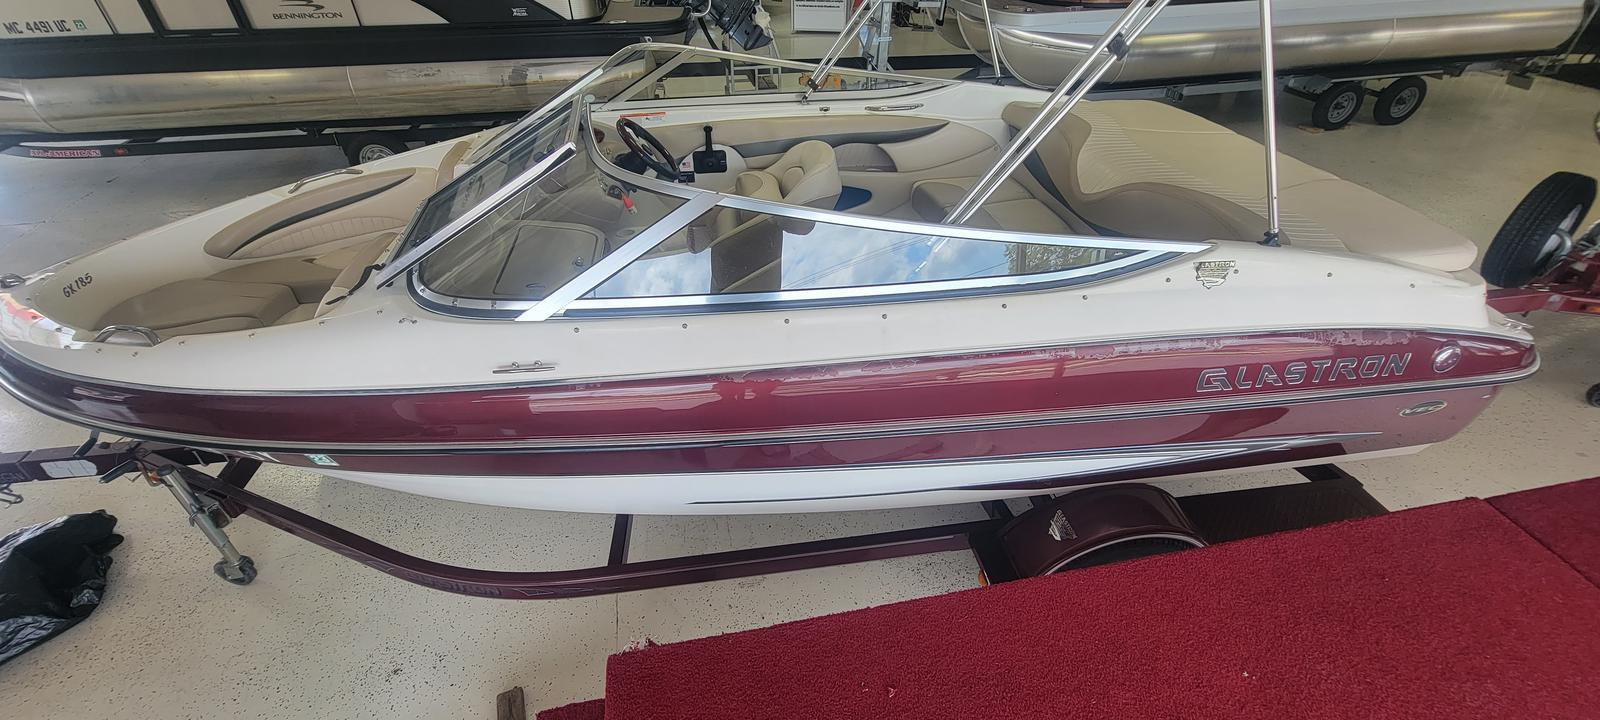 2006 Glastron boat for sale, model of the boat is GX 185 & Image # 3 of 7